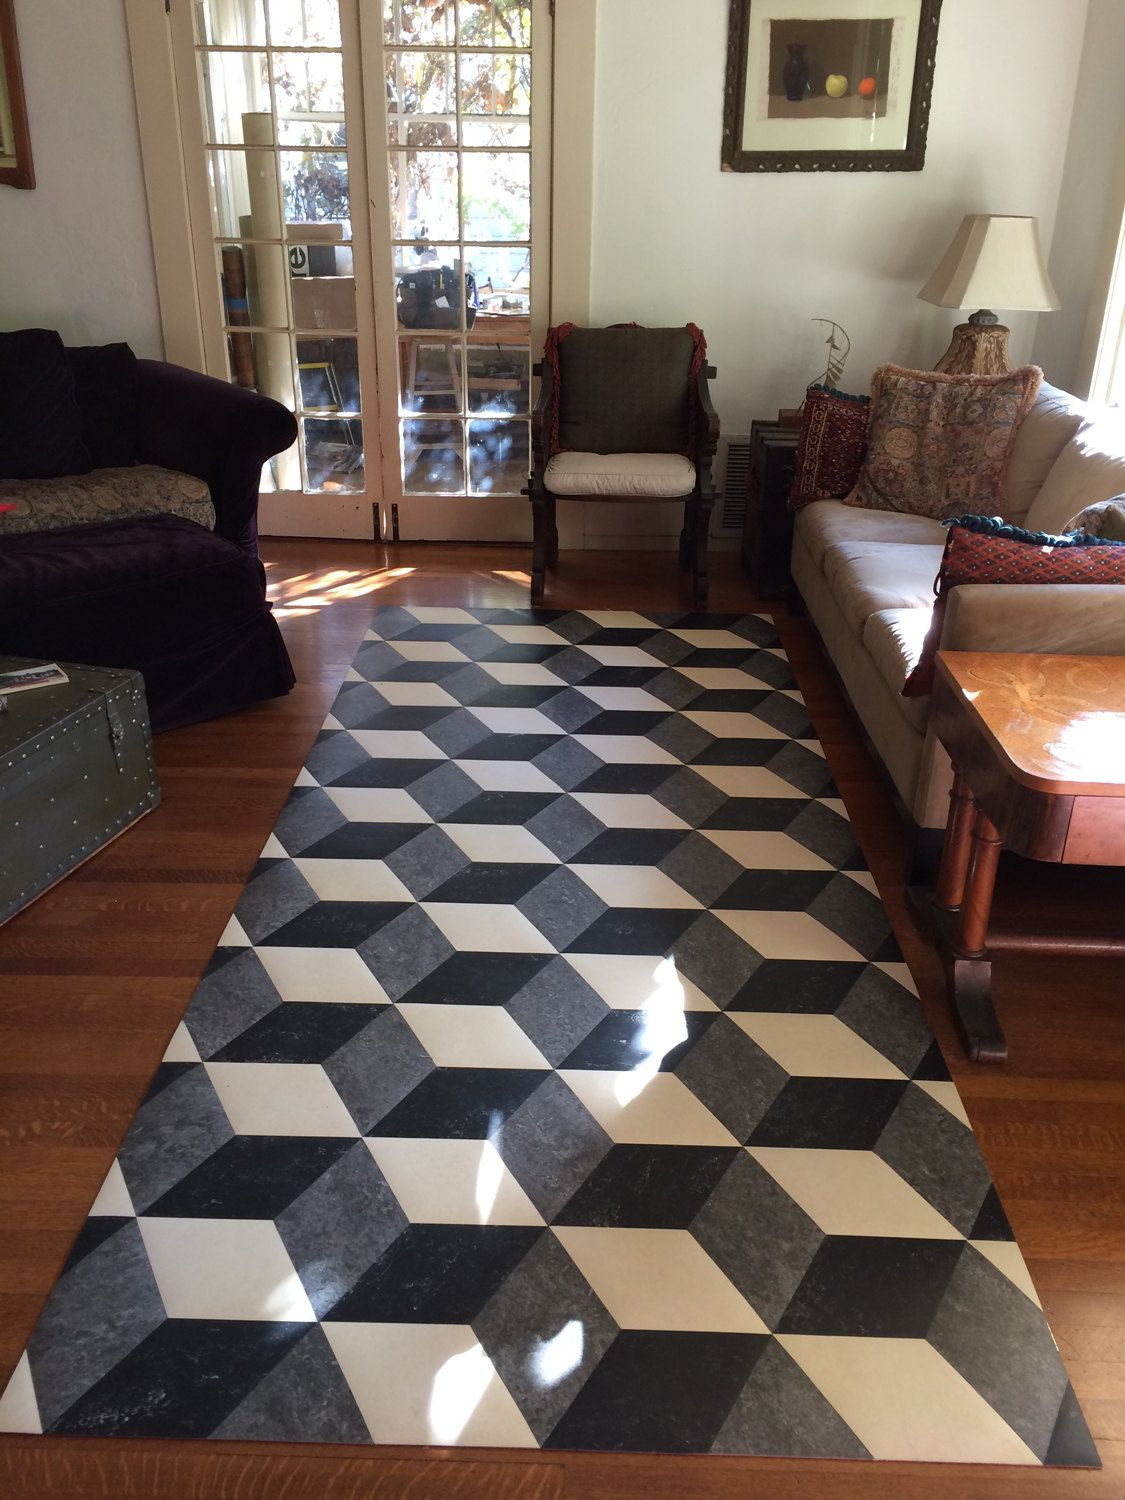 Tile Floor Designs For Living Rooms: Awesome Marmoleum For Contemporary Interior Floor Design